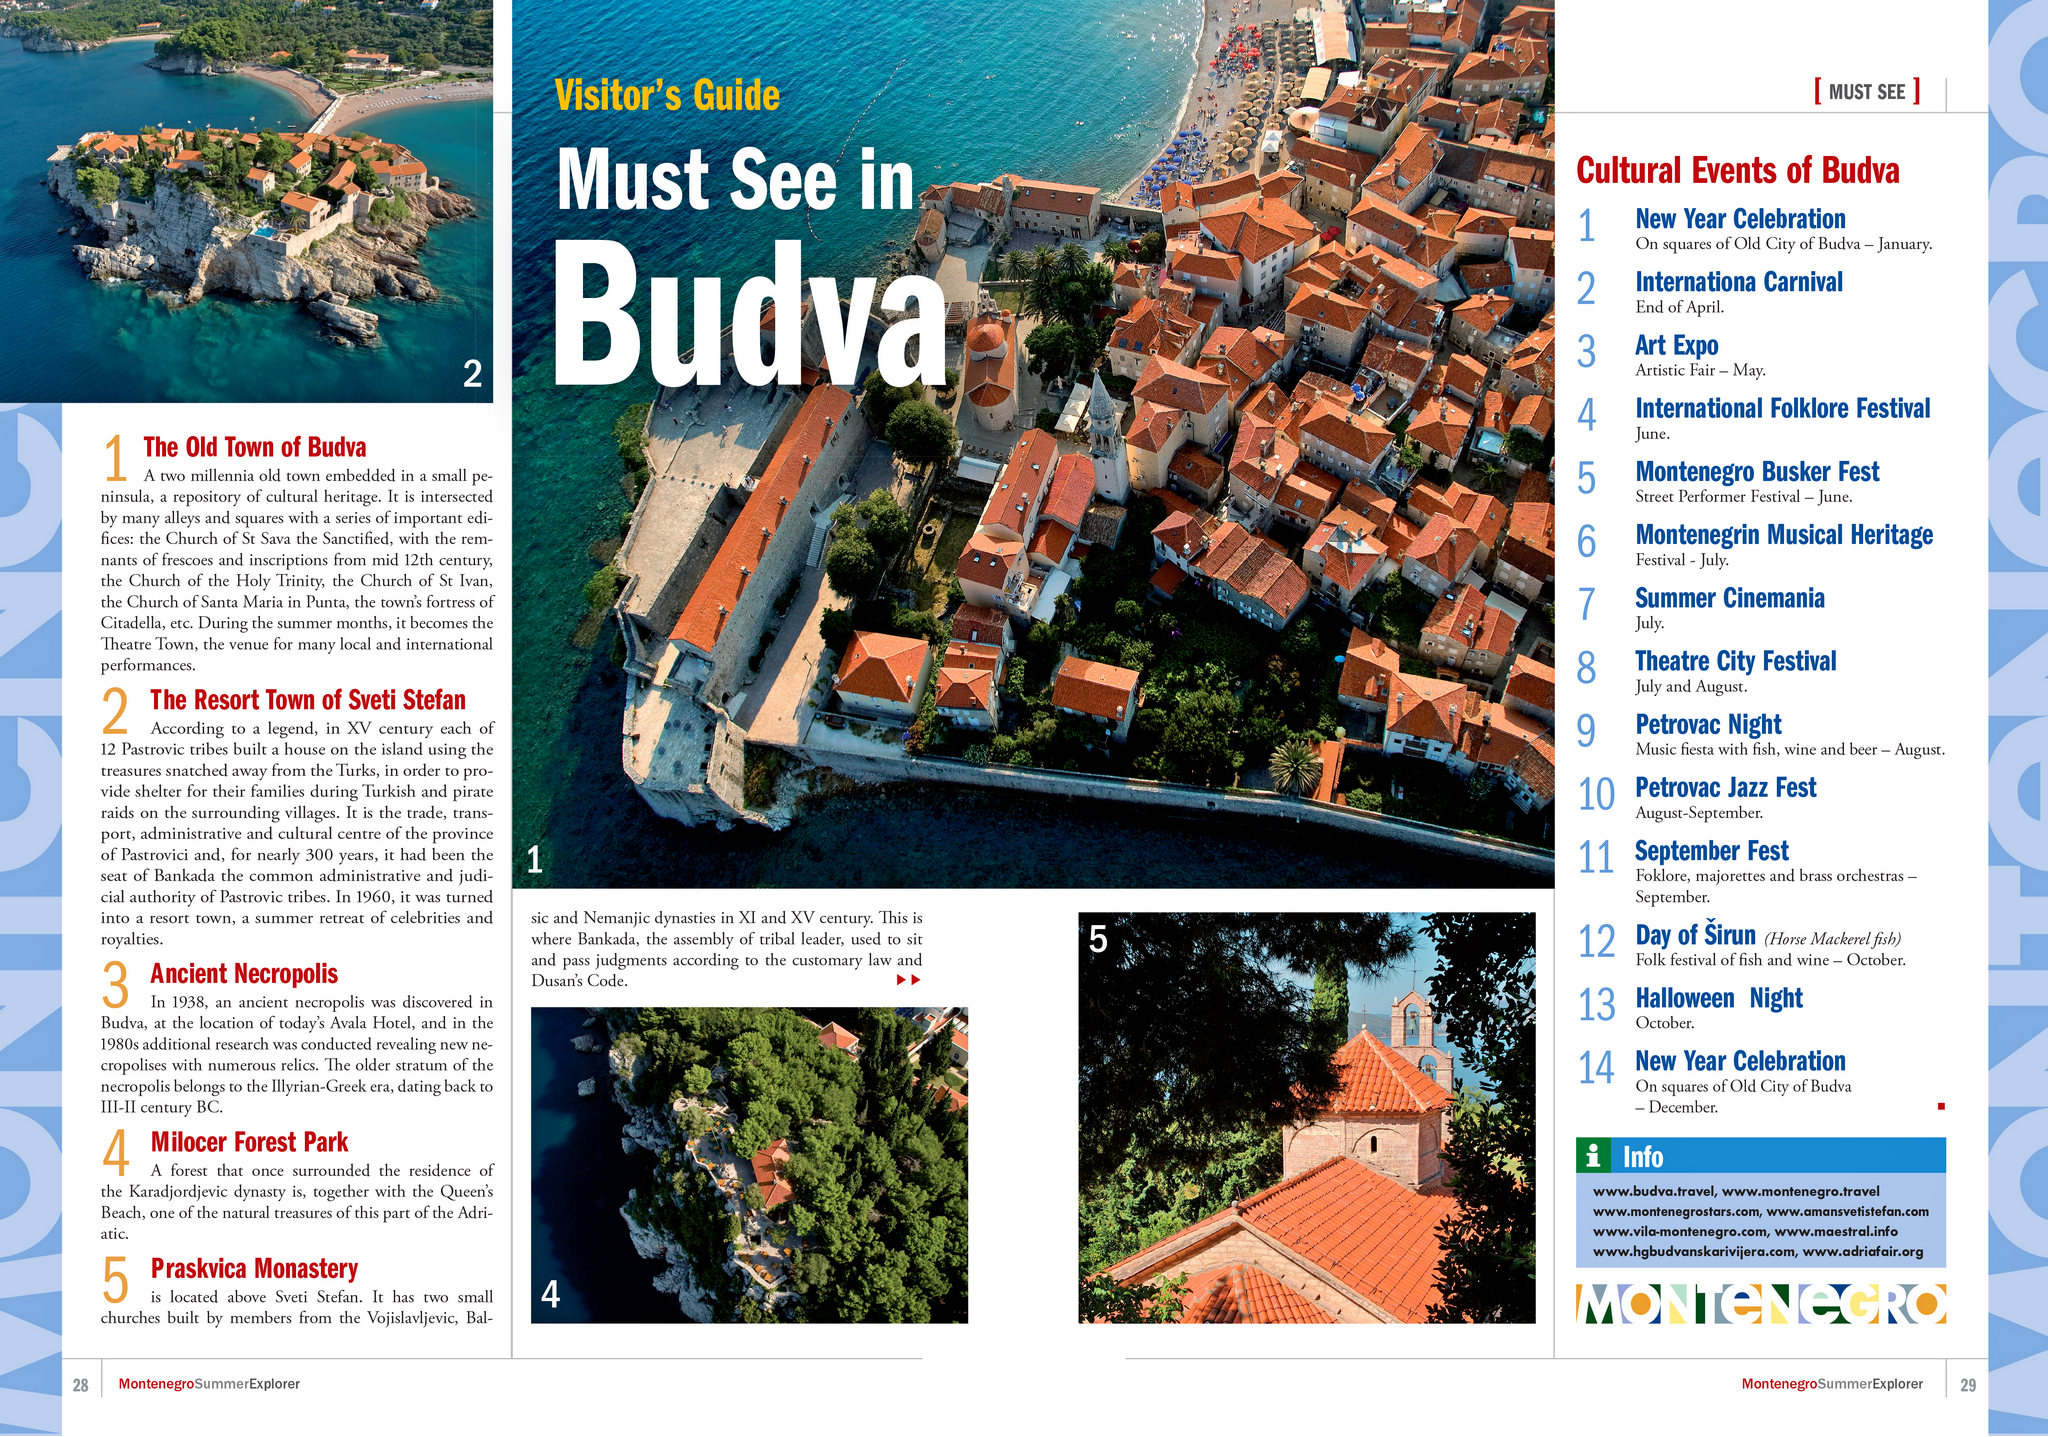 Must see in Budva